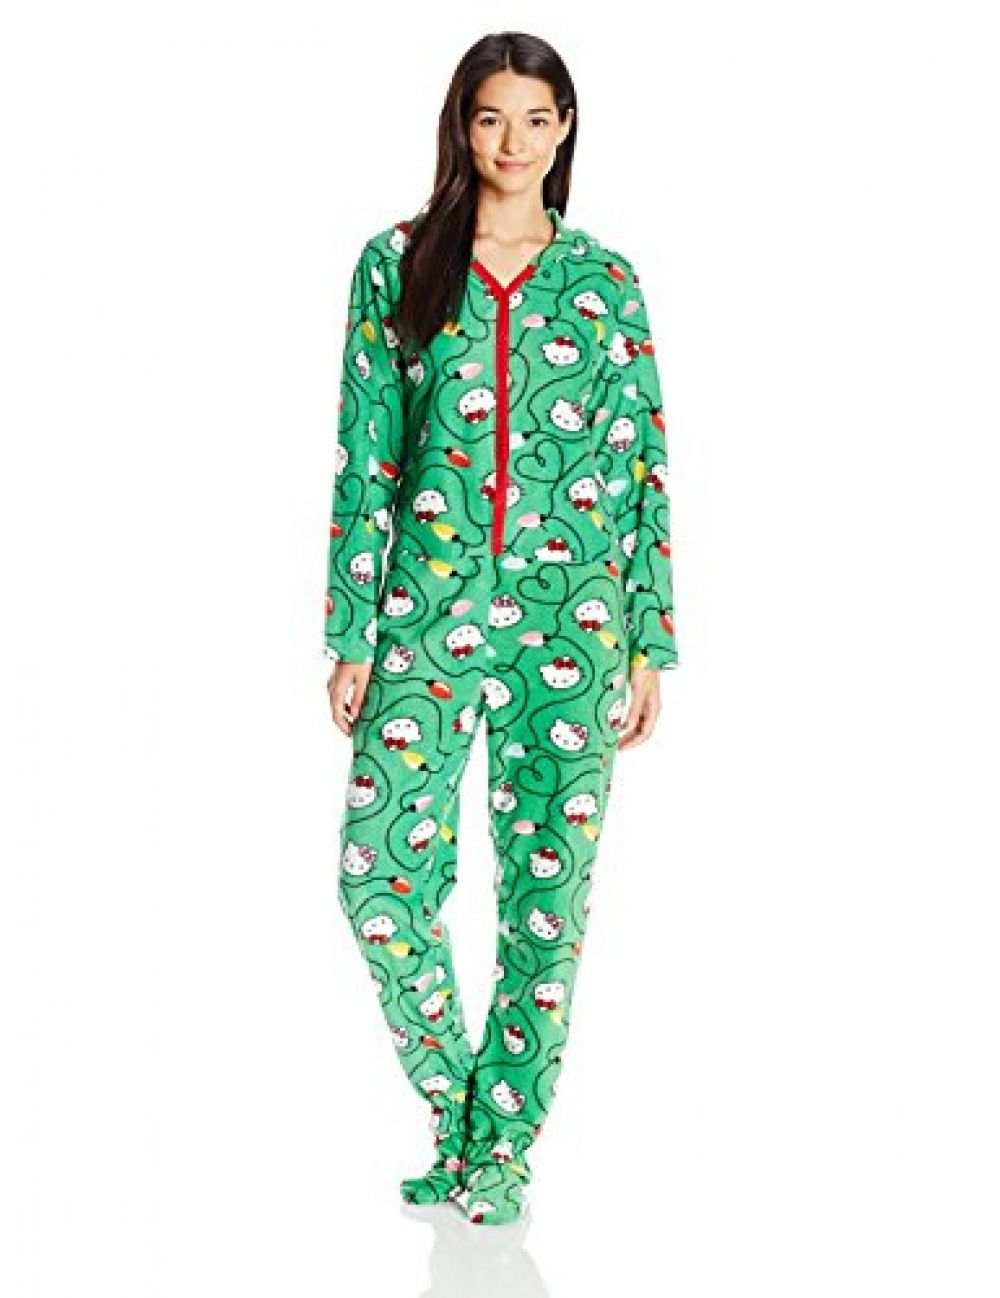 8f22146fa Hello Kitty Women's Ugly Holiday Footed Pajamas with Hood Footed pajamas in  allover festive Hello Kitty print featuring print-matched hood at back and  snap ...